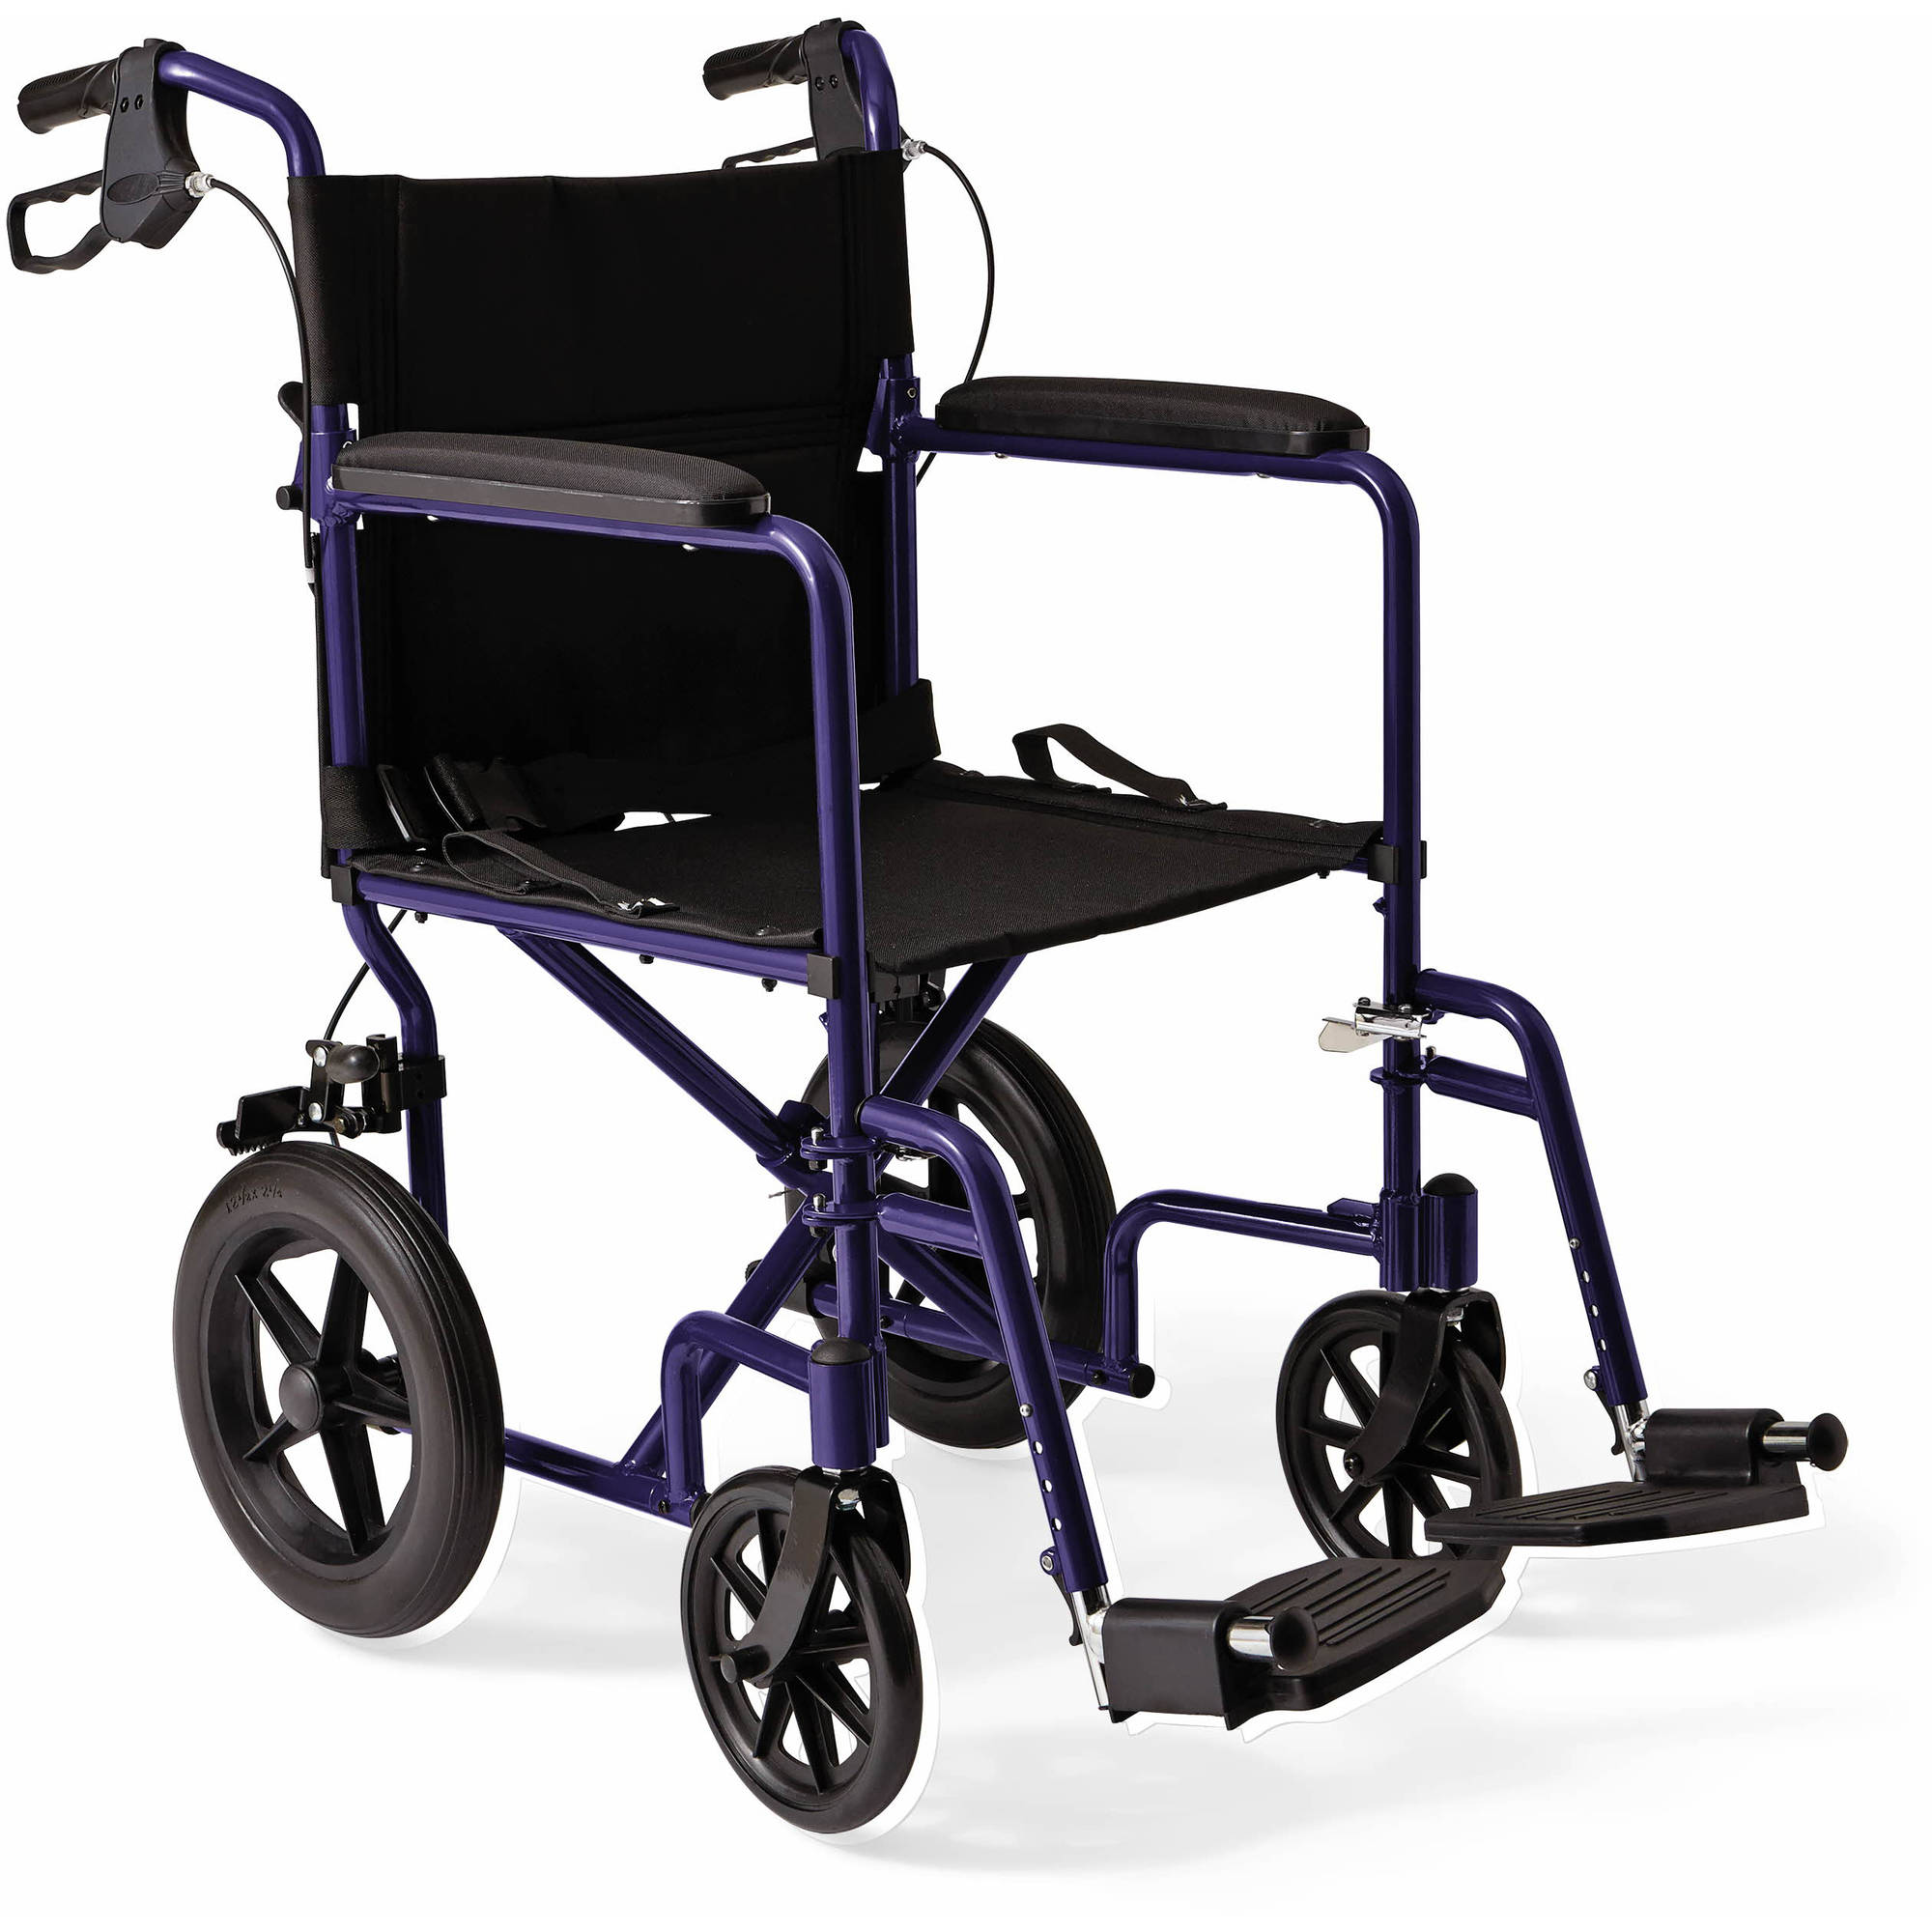 Medline Excel Deluxe Aluminum Transport Chair with Hand Brakes